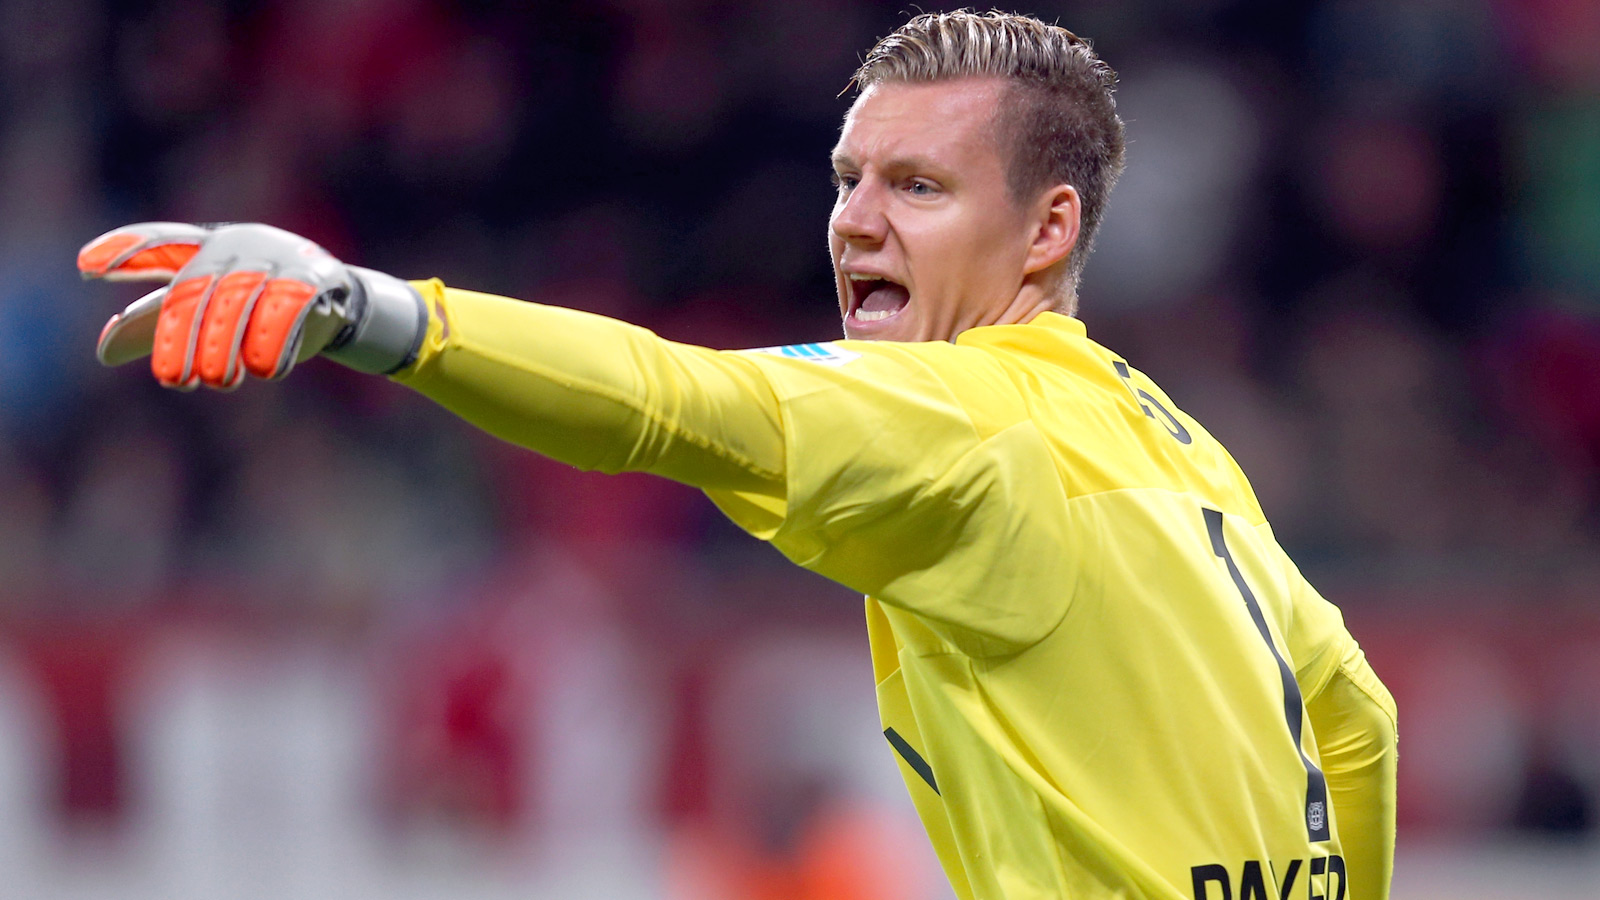 Germany calls up Leverkusen keeper for Euro 2016 qualifiers